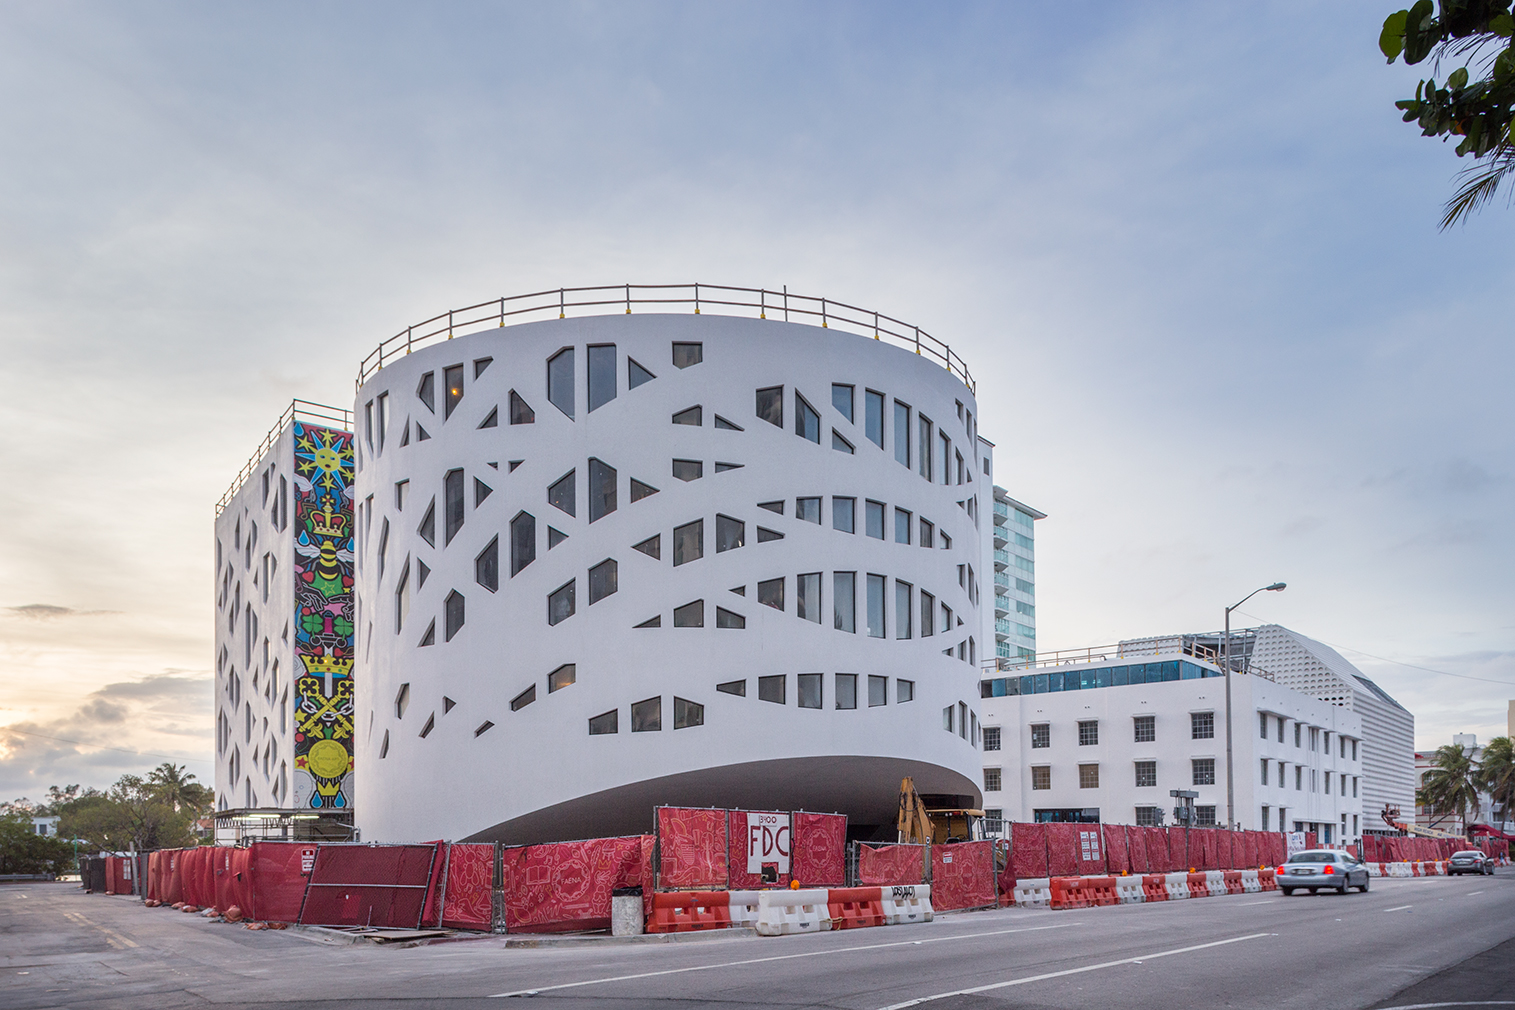 Faena Forum by OMA